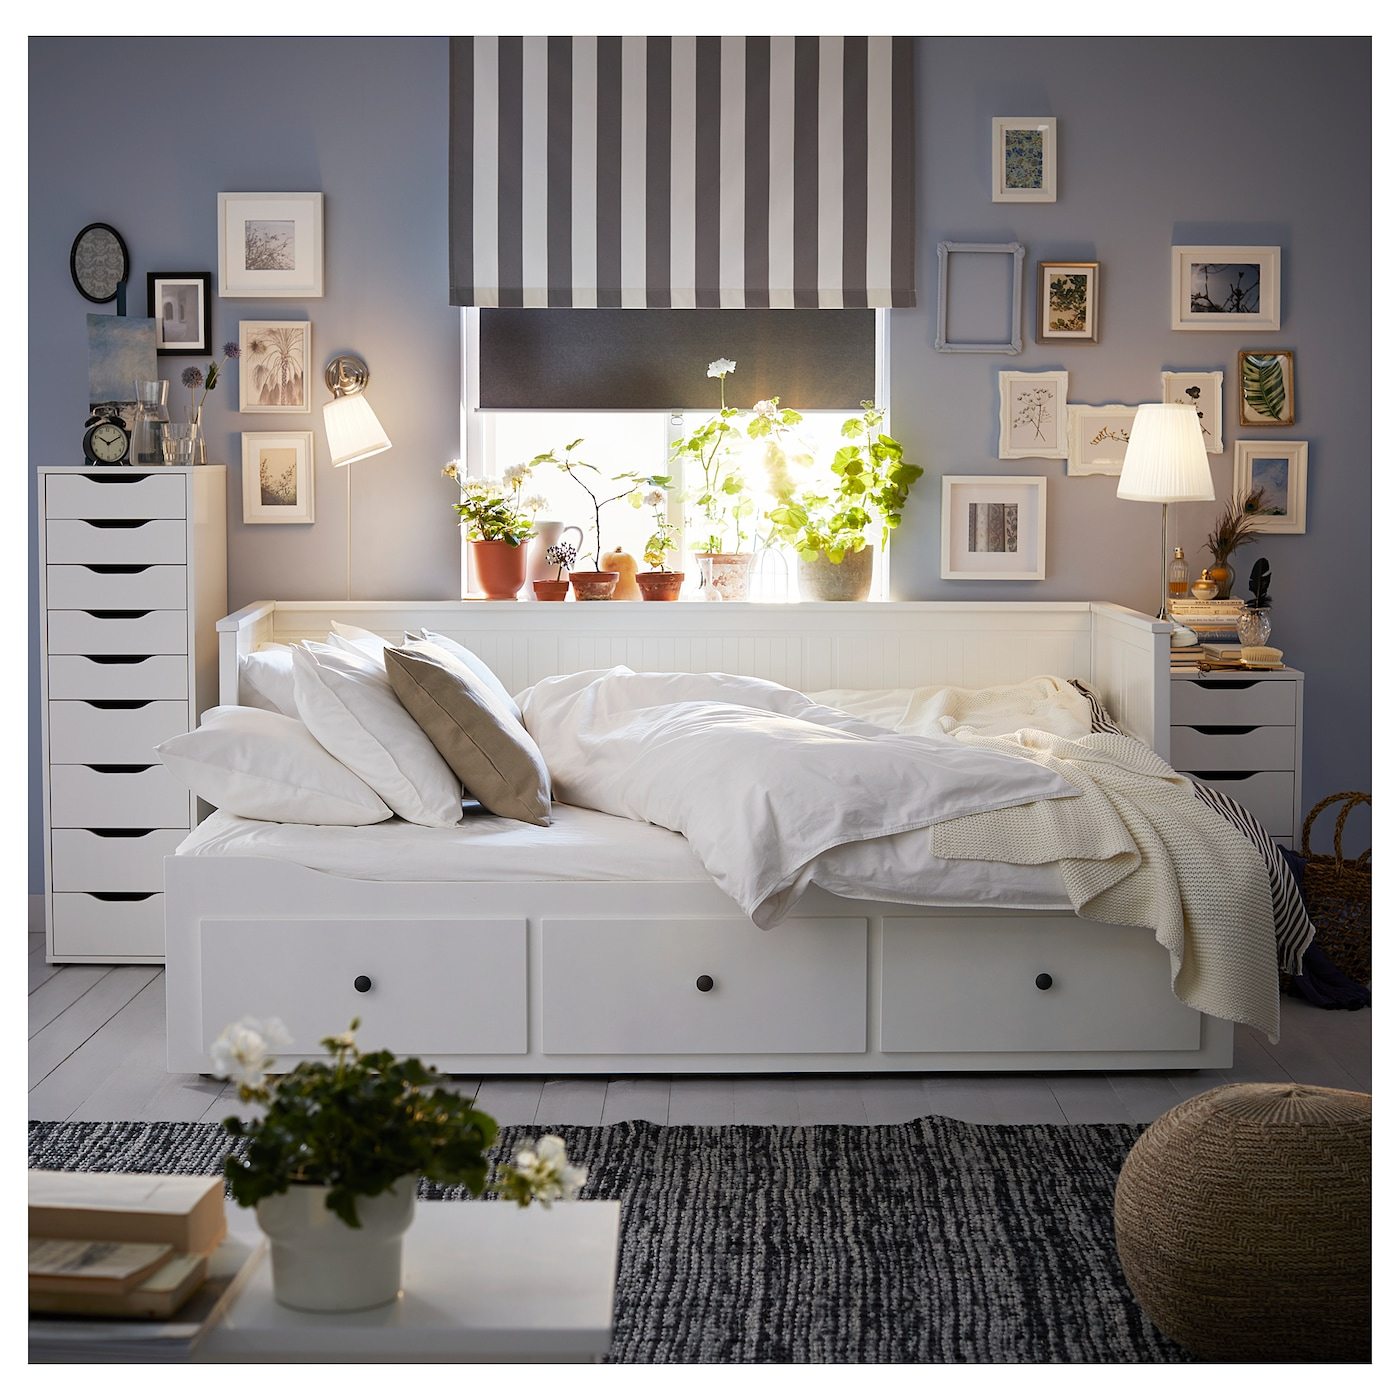 - HEMNES Daybed Frame With 3 Drawers, White, Twin - IKEA